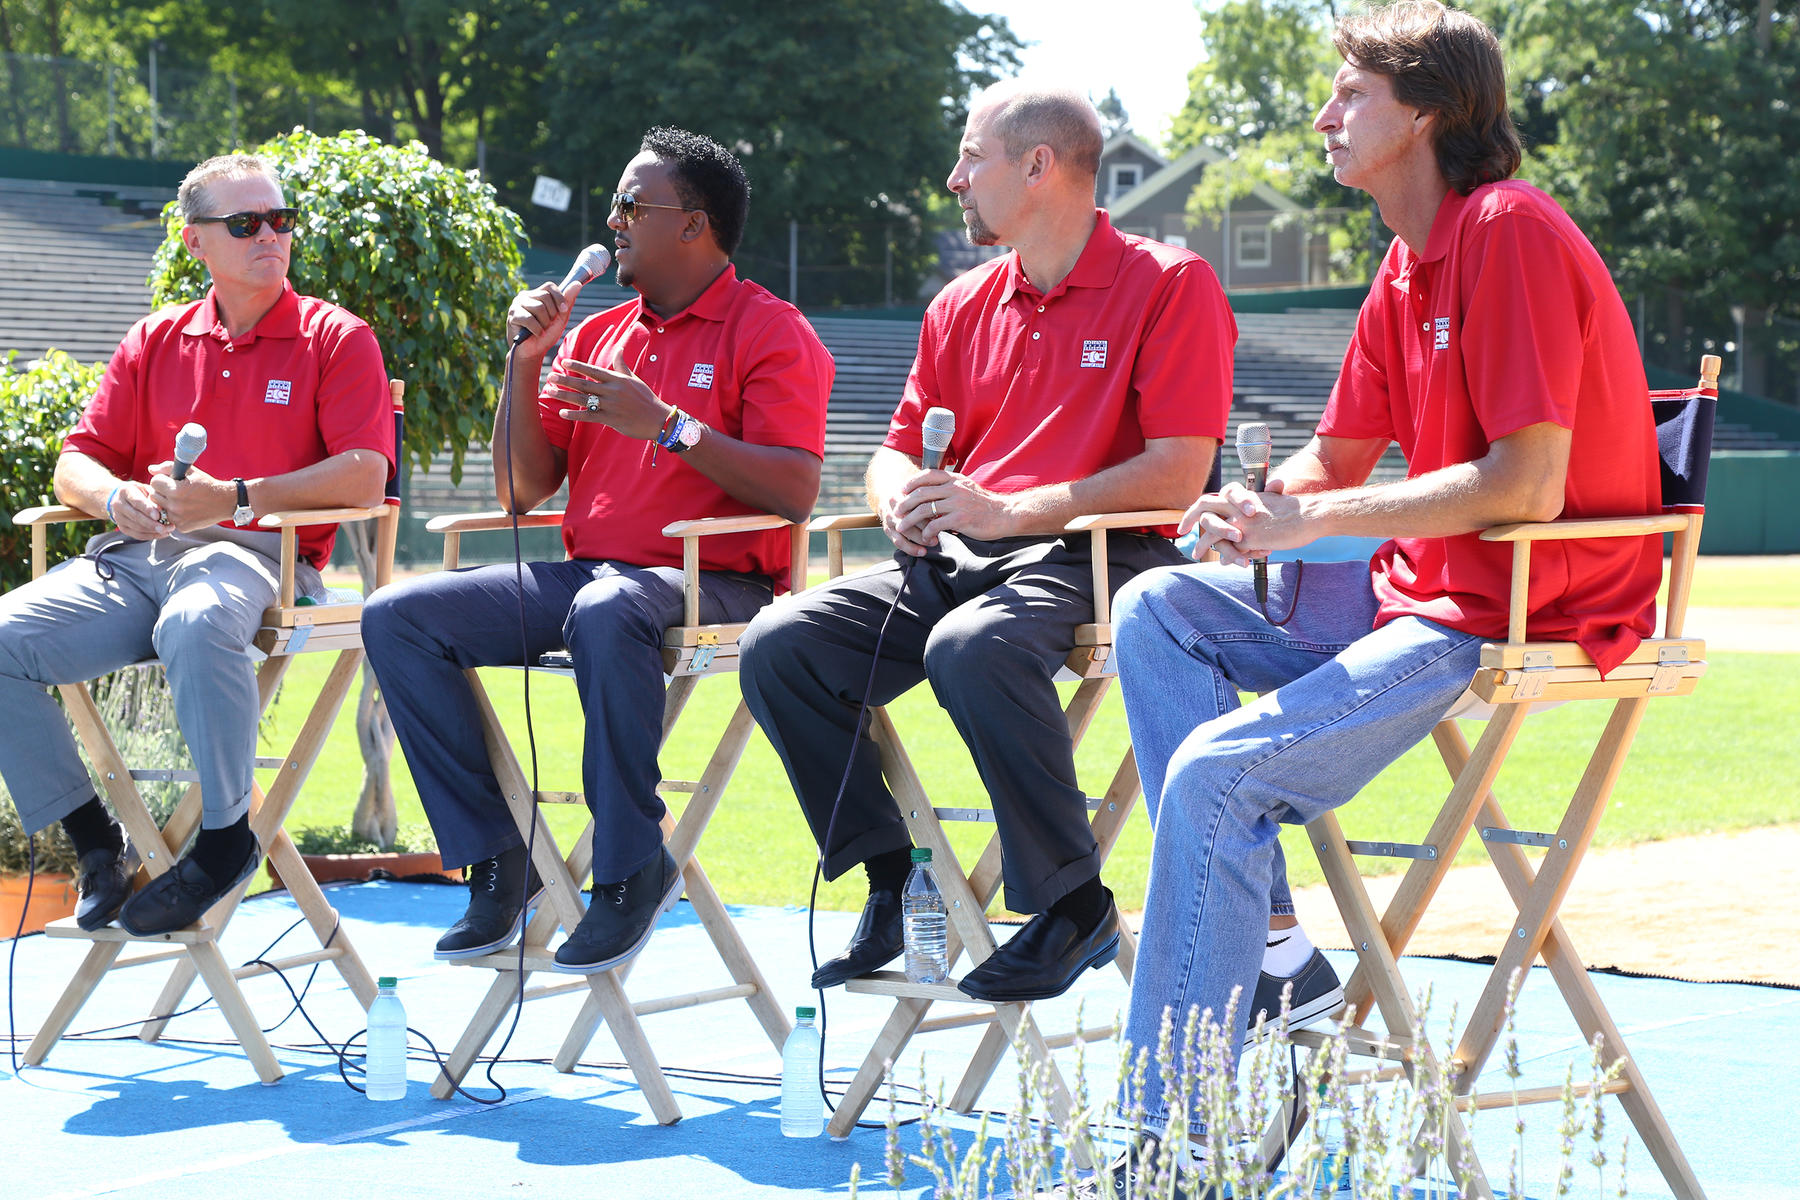 From left, Class of 2015 inductees Craig Biggio, Pedro Martínez, John Smoltz and Randy Johnson reminisce on their Hall of Fame Weekend experiences during the Legends of the Game Roundtable at Cooperstown's Doubleday Field. (Parker Fish / National Baseball Hall of Fame)